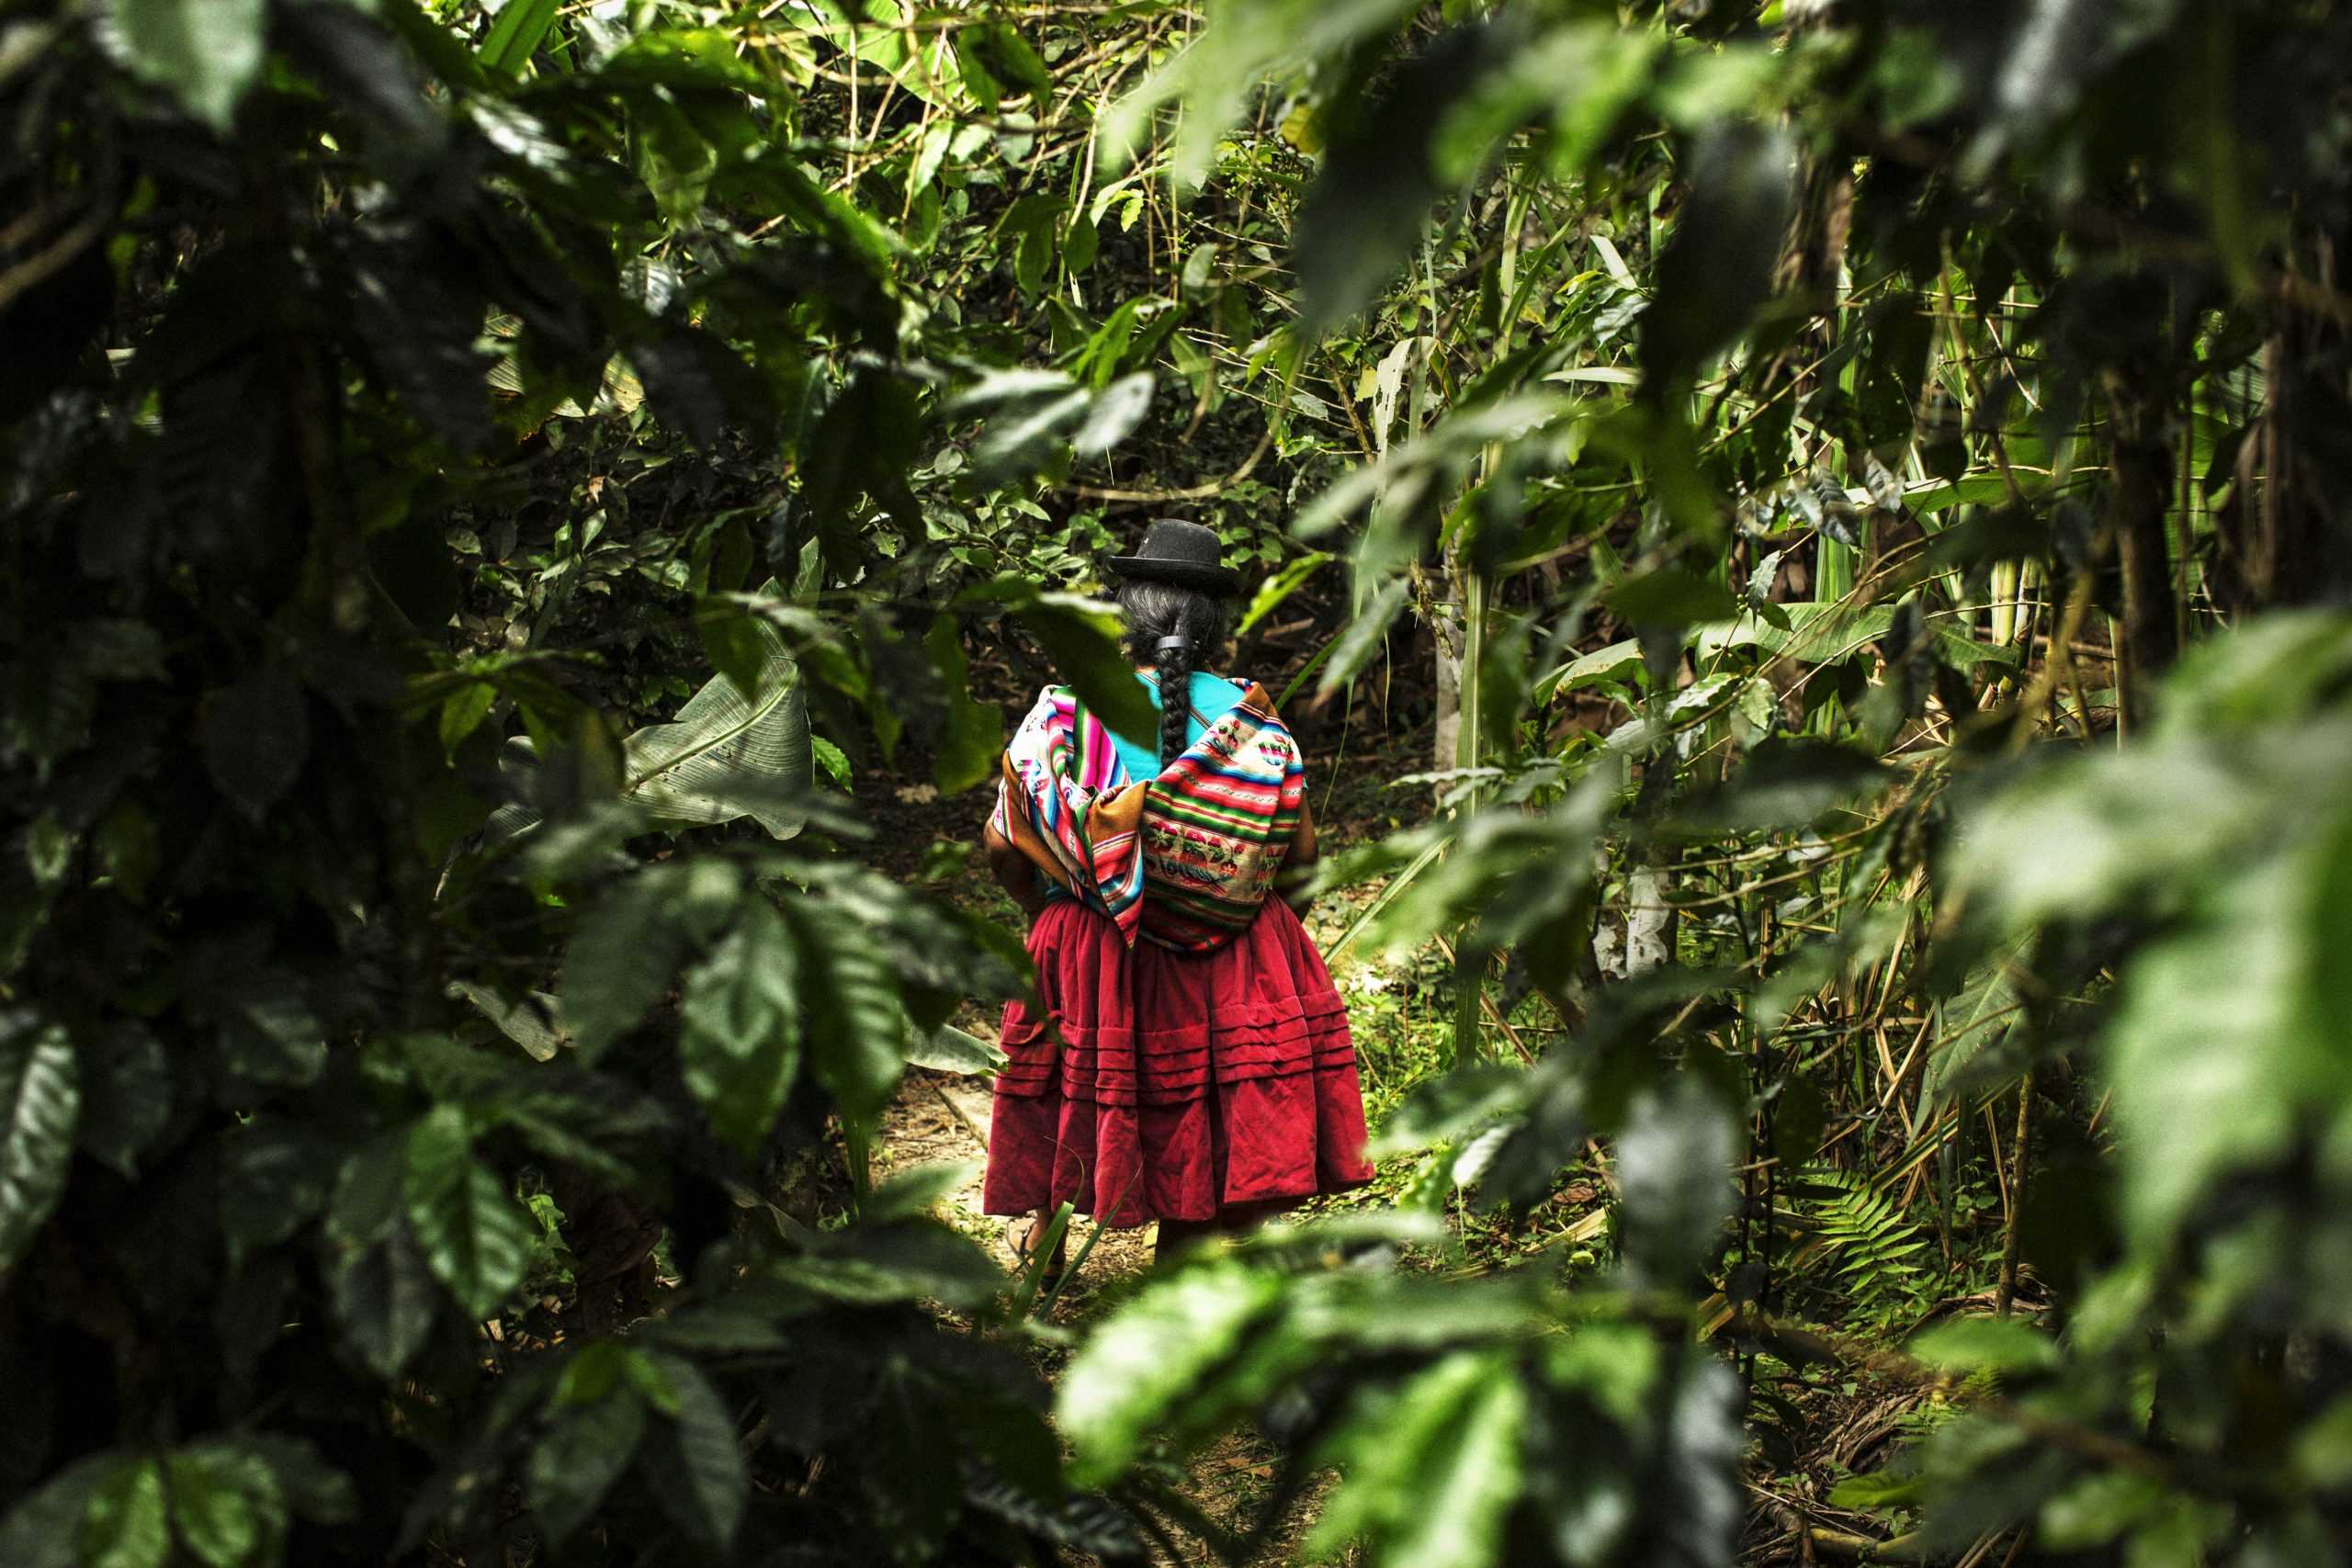 Peruvian woman walking in the forest